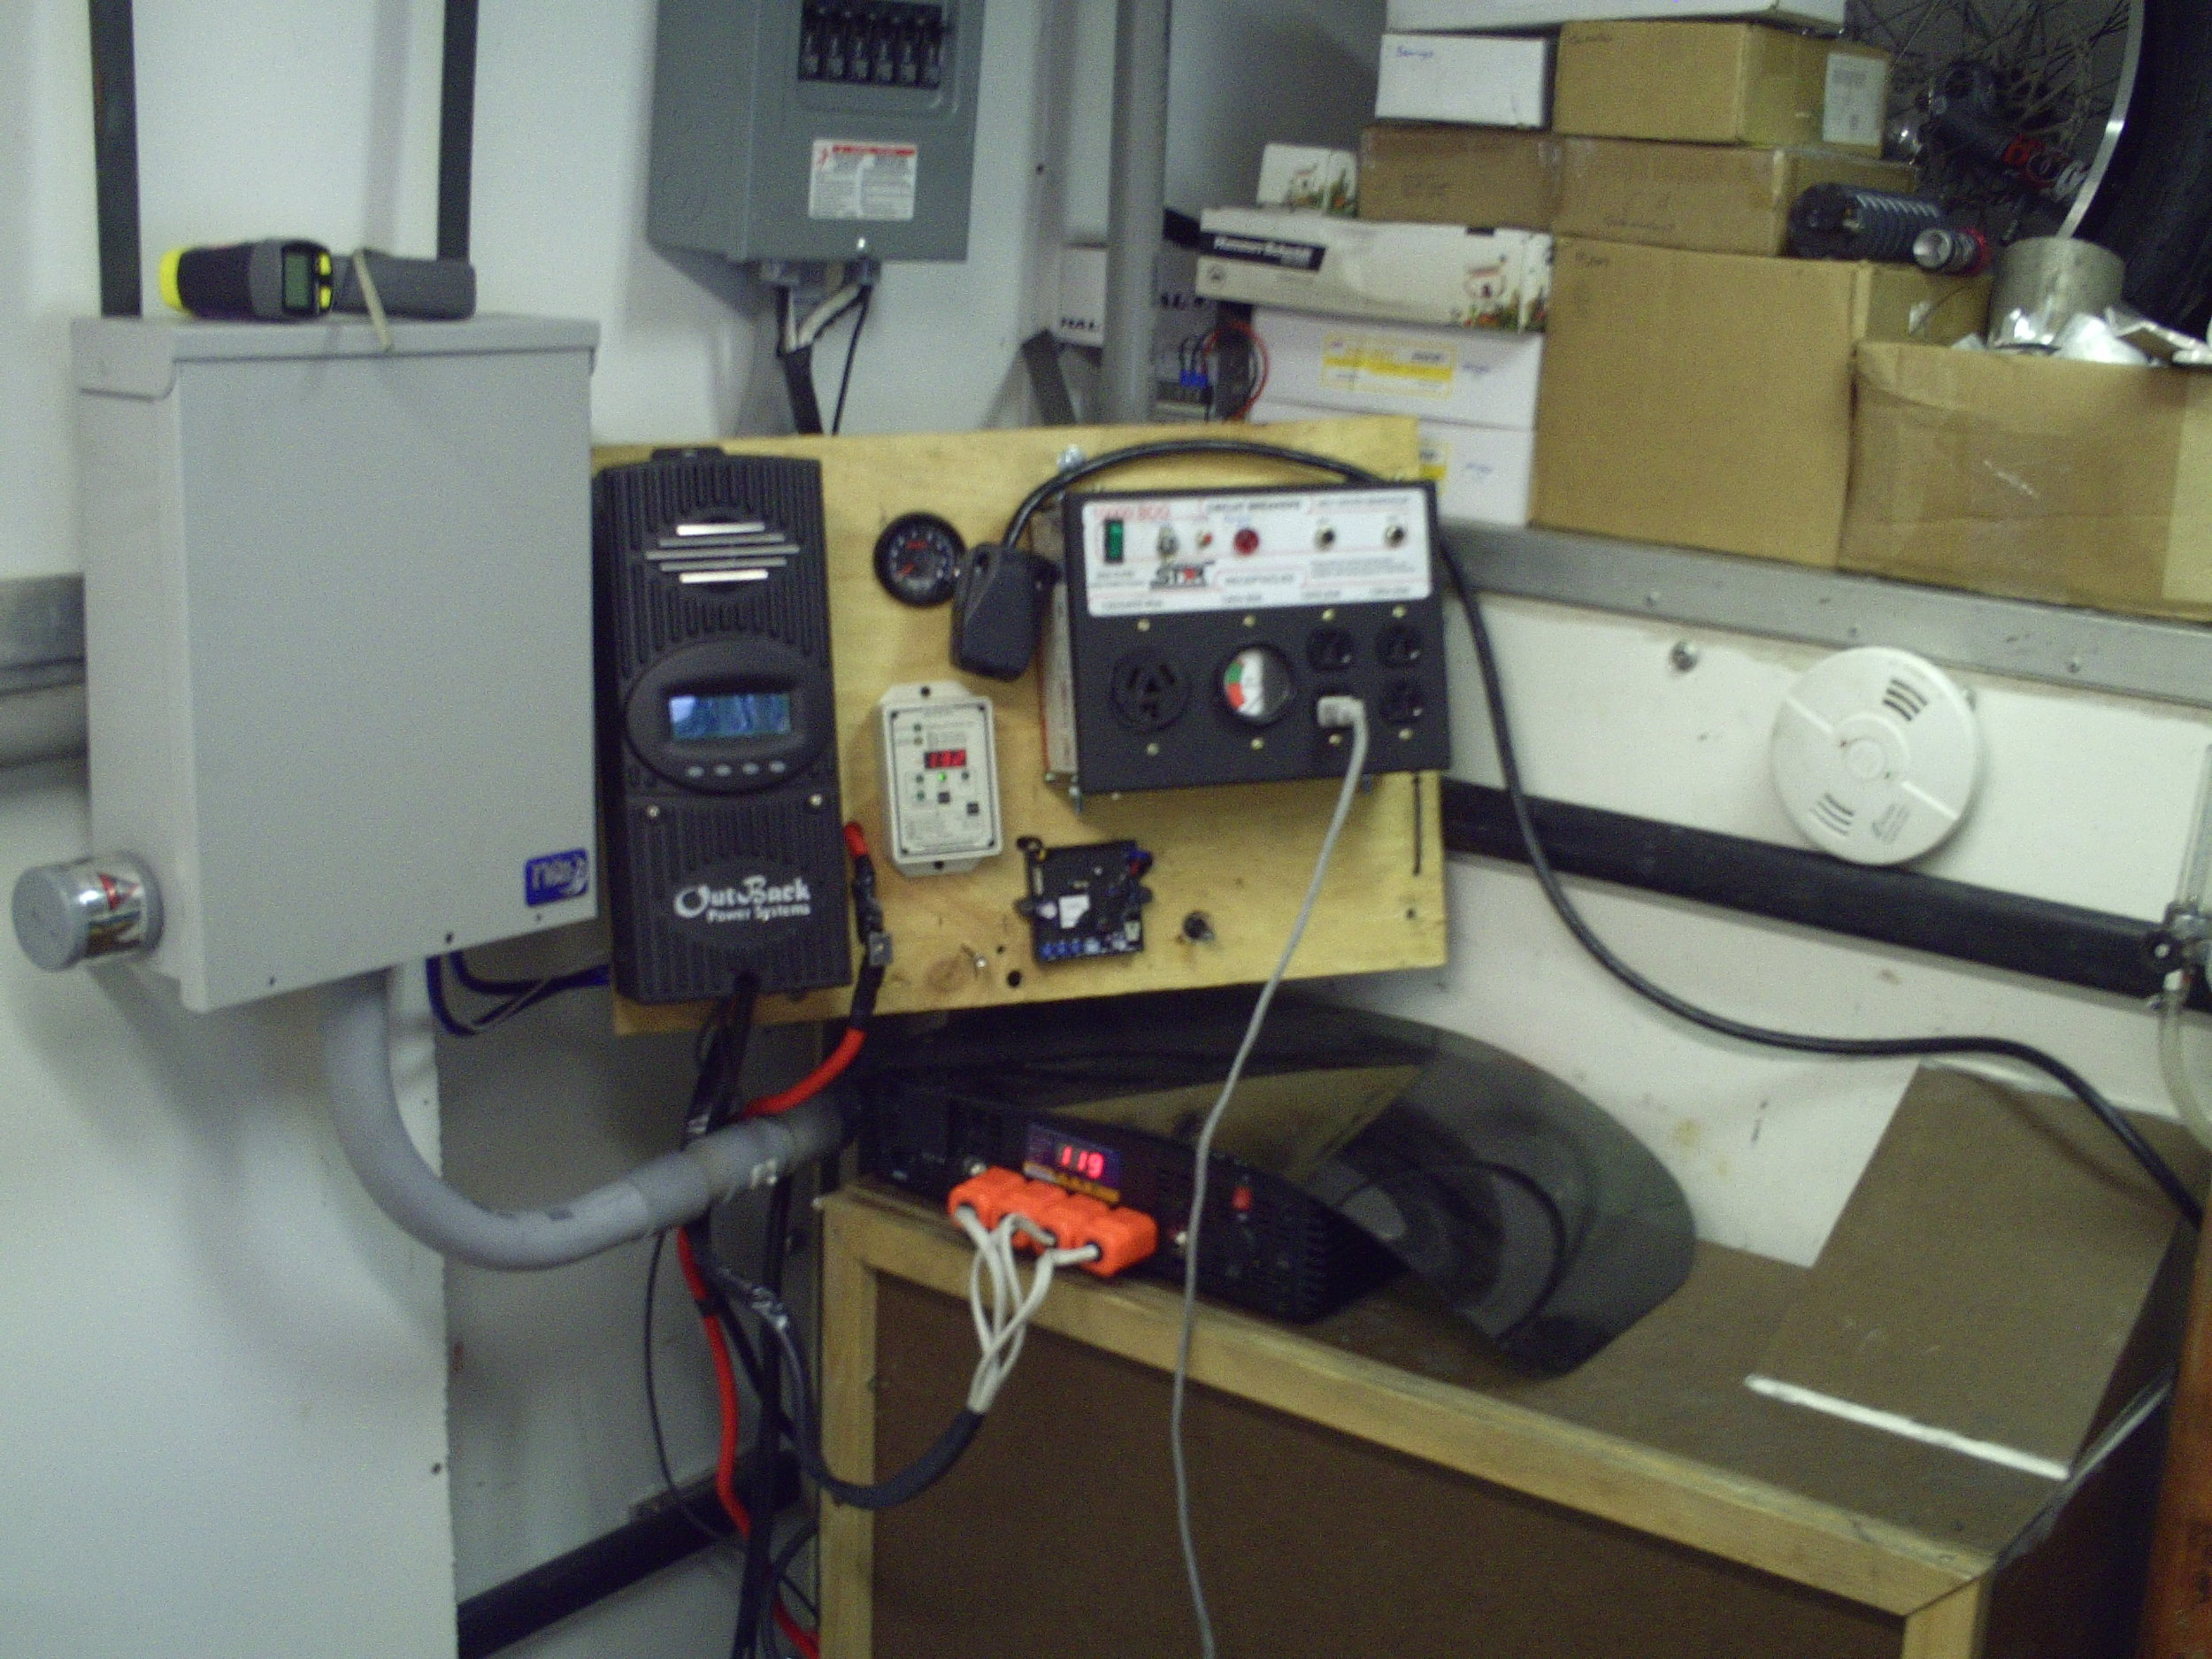 The solar/generator control/distribution center. Hoping to exactly recreate this setup in the new shop trailer.